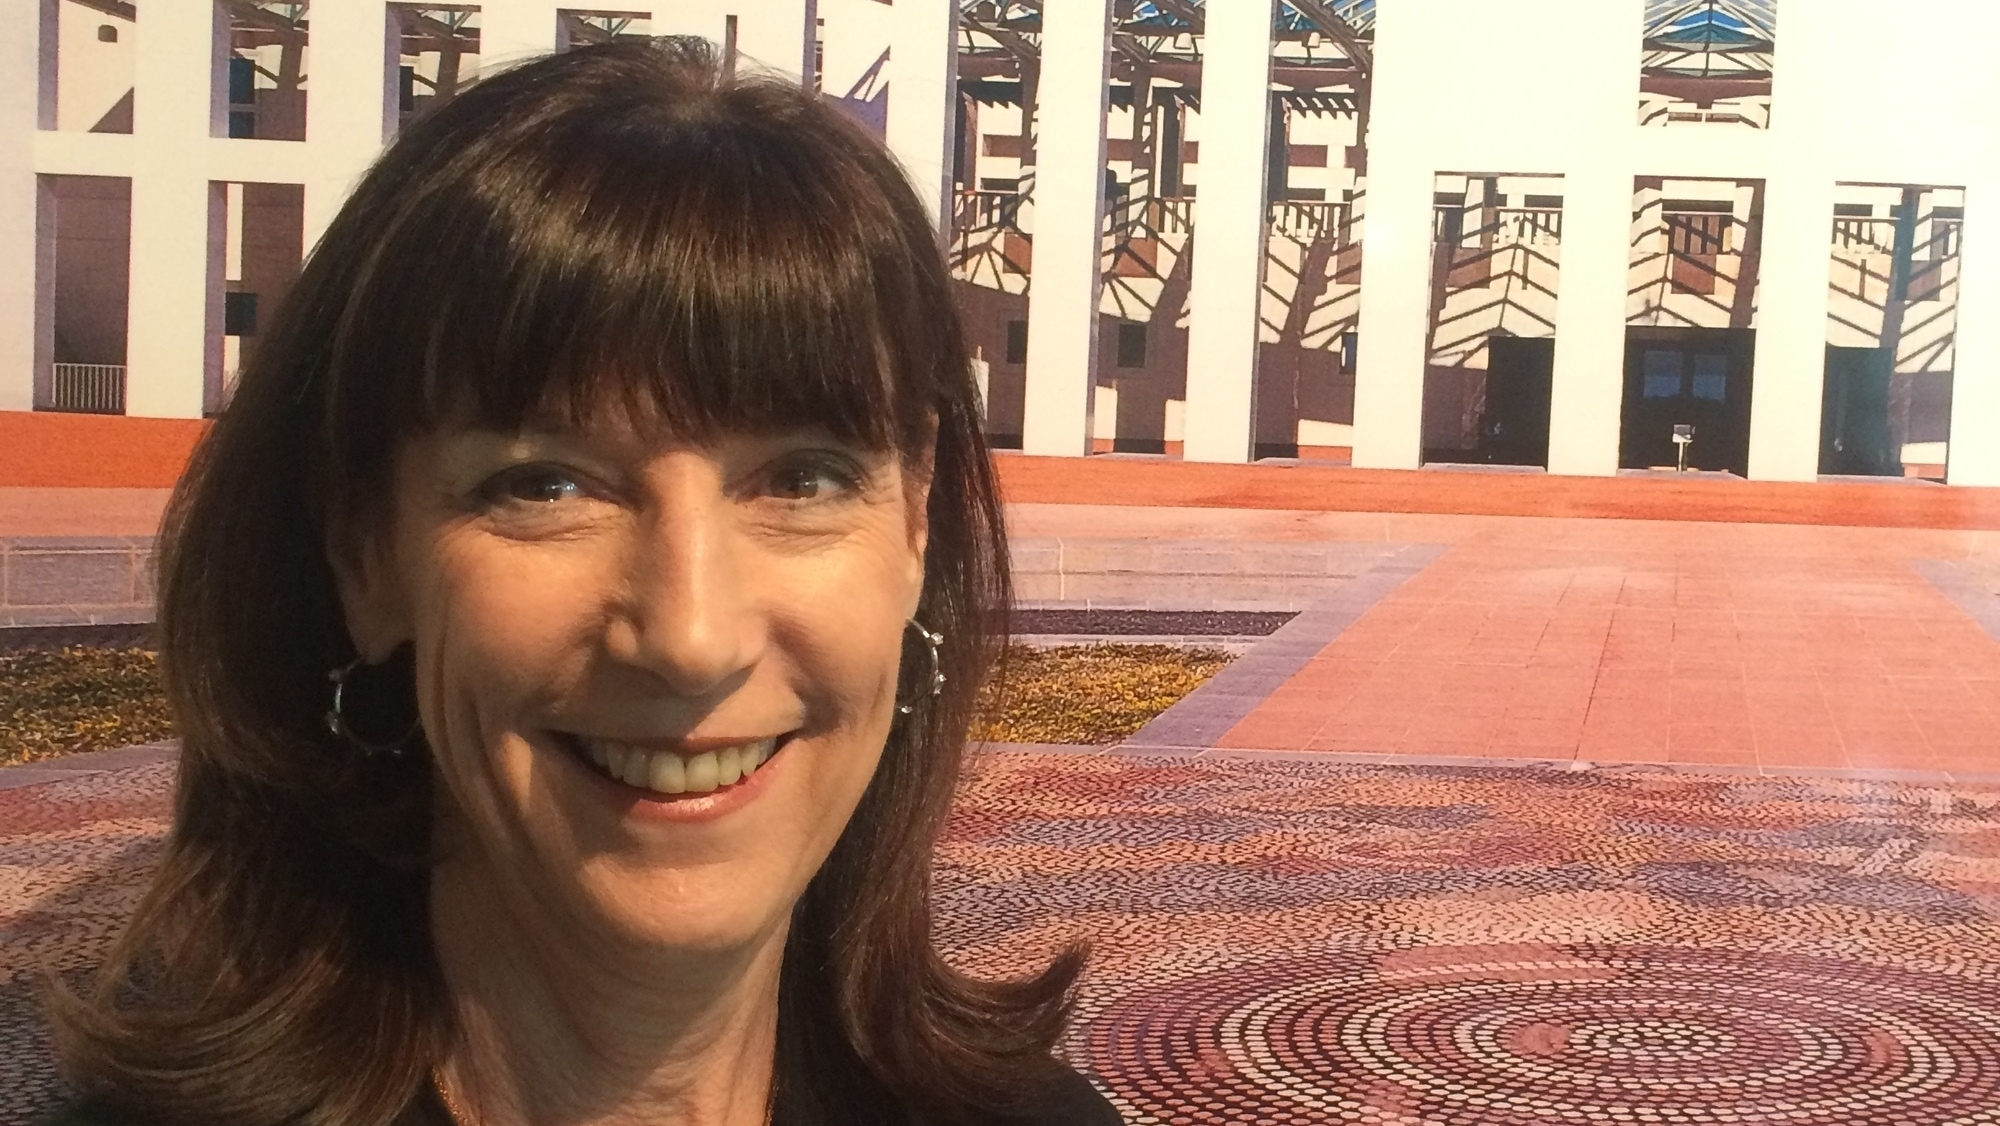 karenne in front of parliament house, canberra